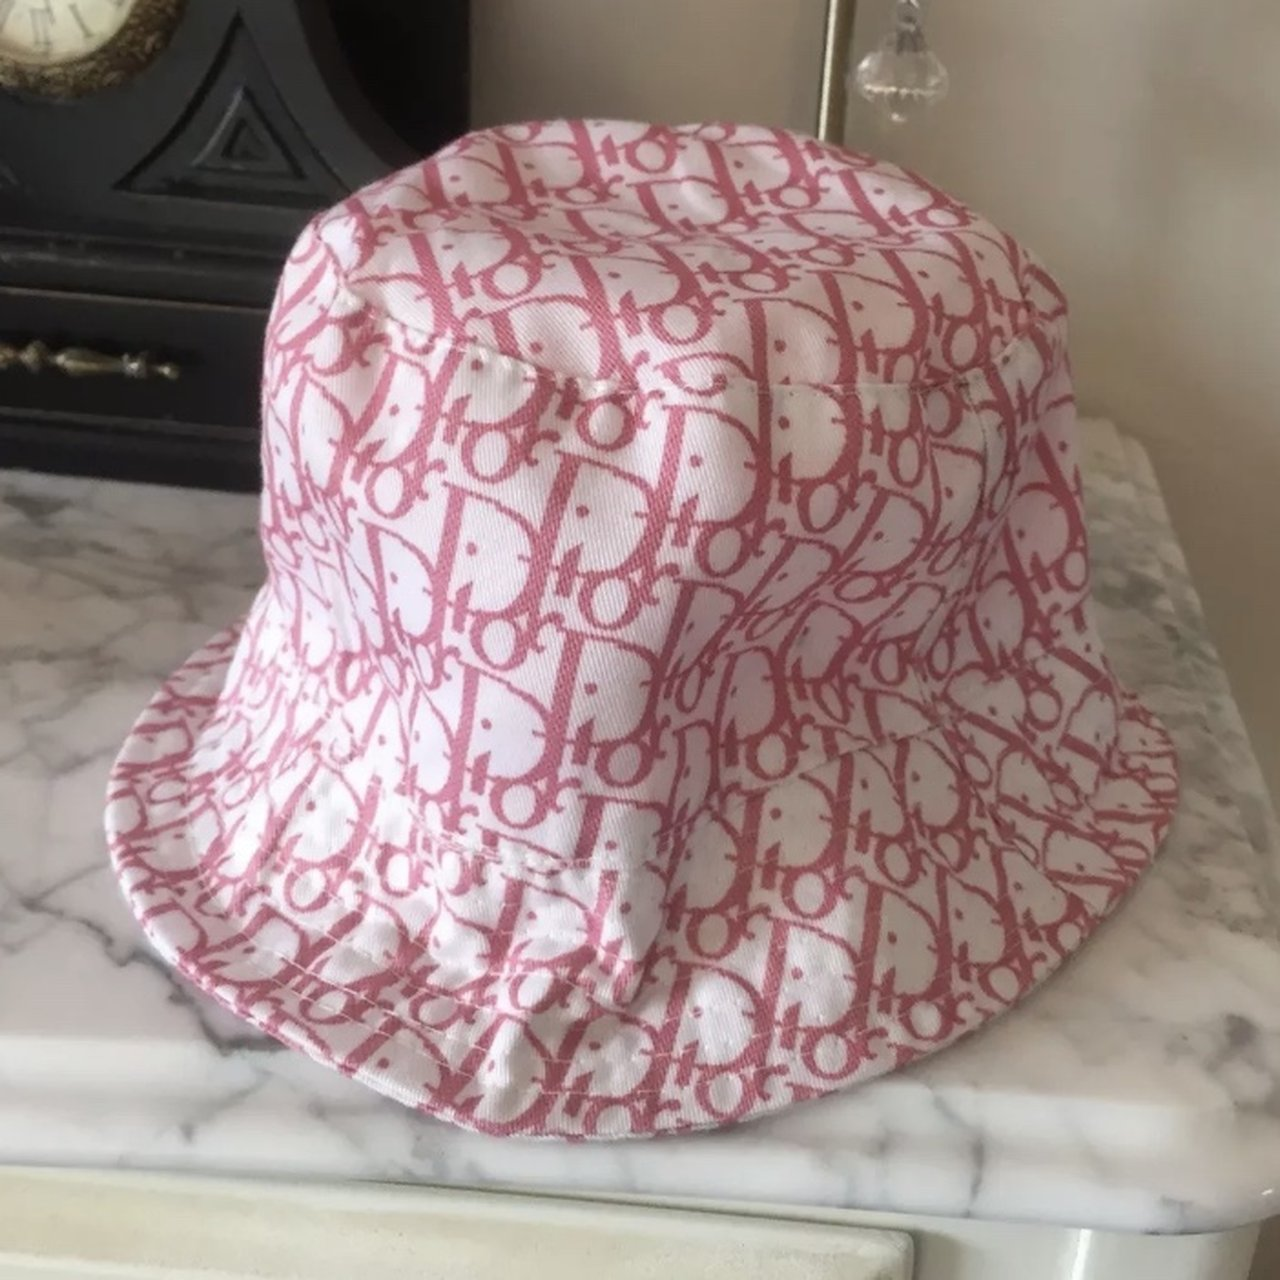 Dior monogram sun hat   bucket hat. Unsure if genuine as all - Depop 0ba5f10fe1e